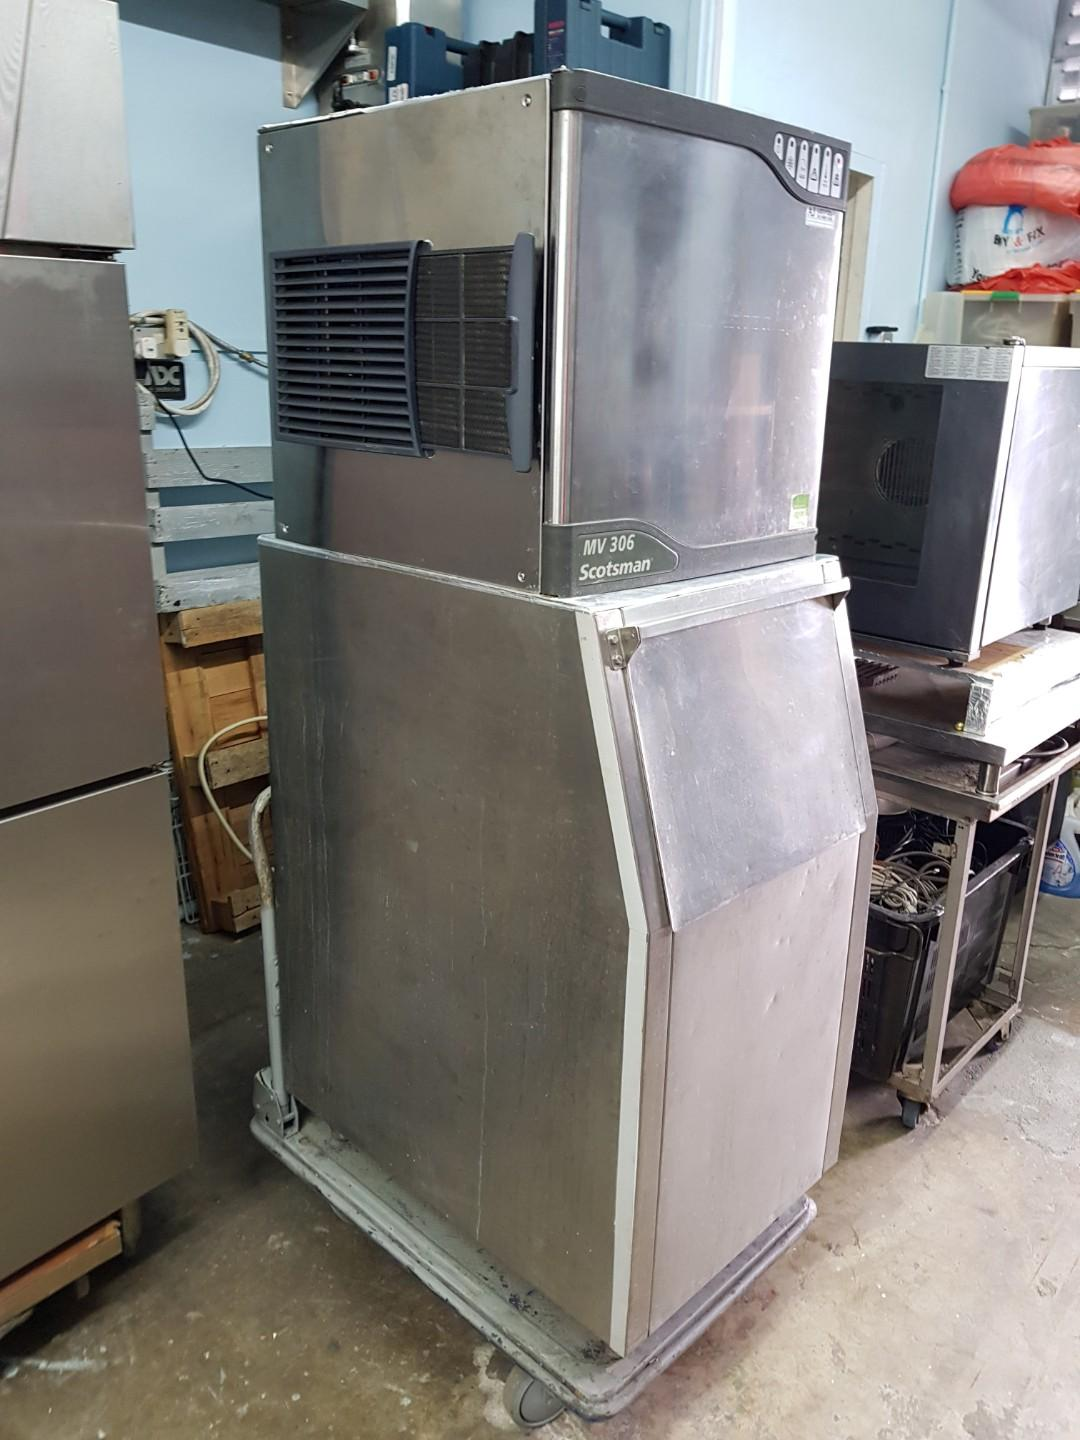 Scotsman MV306 icemaker machine